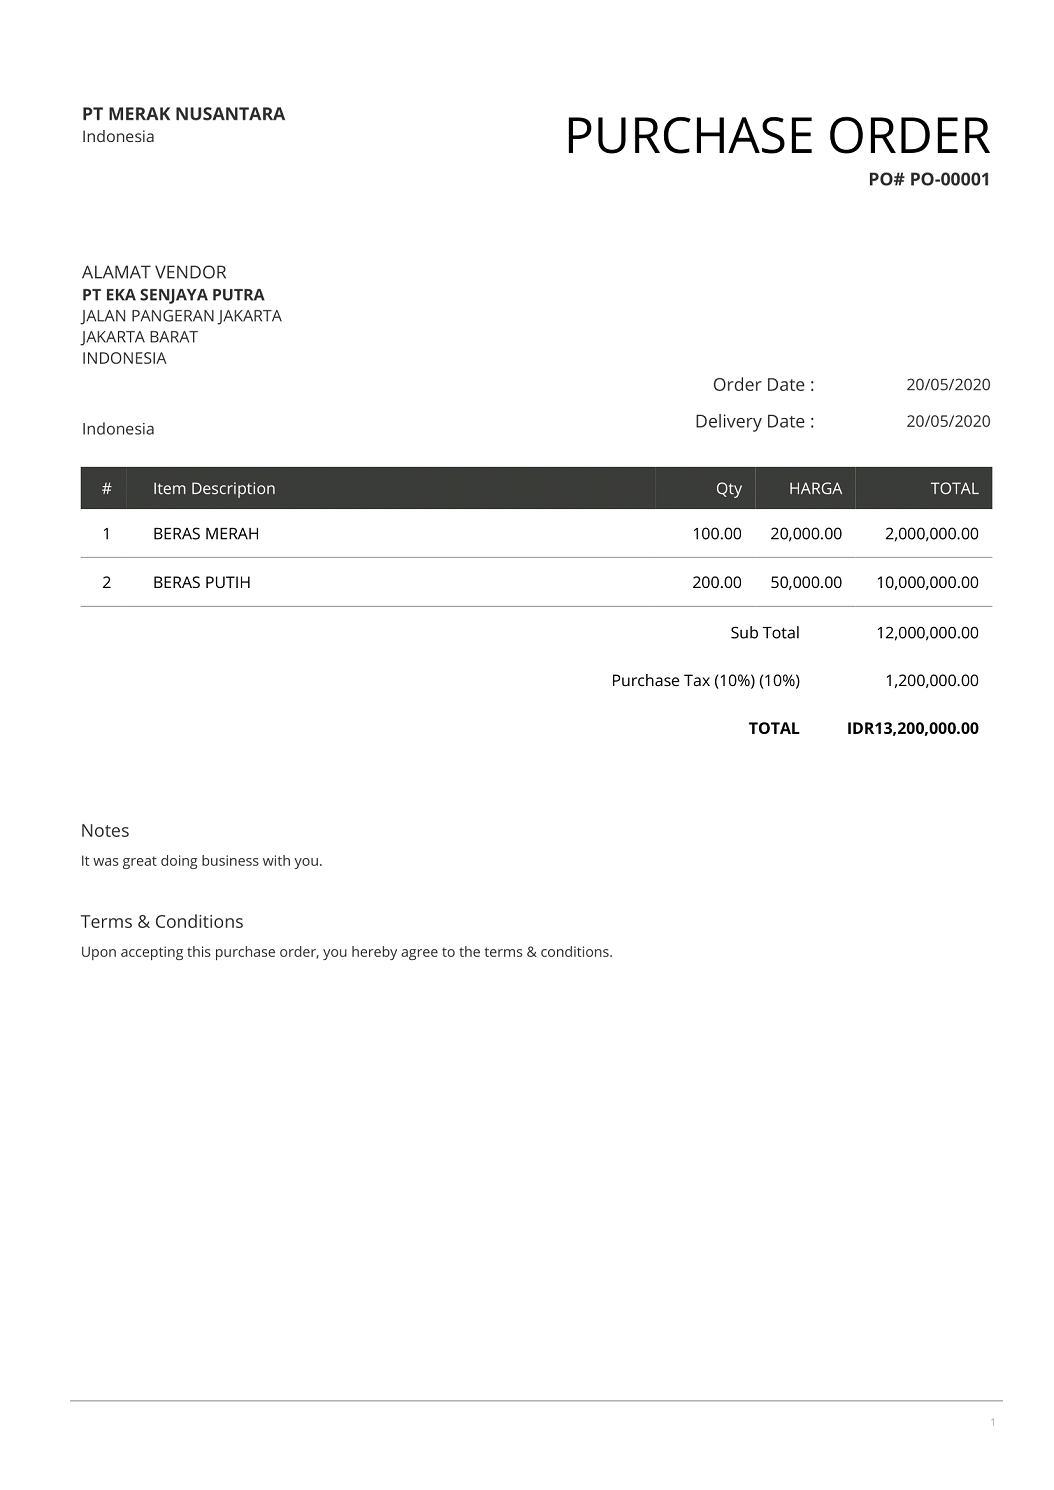 Contoh Purchase Order PO